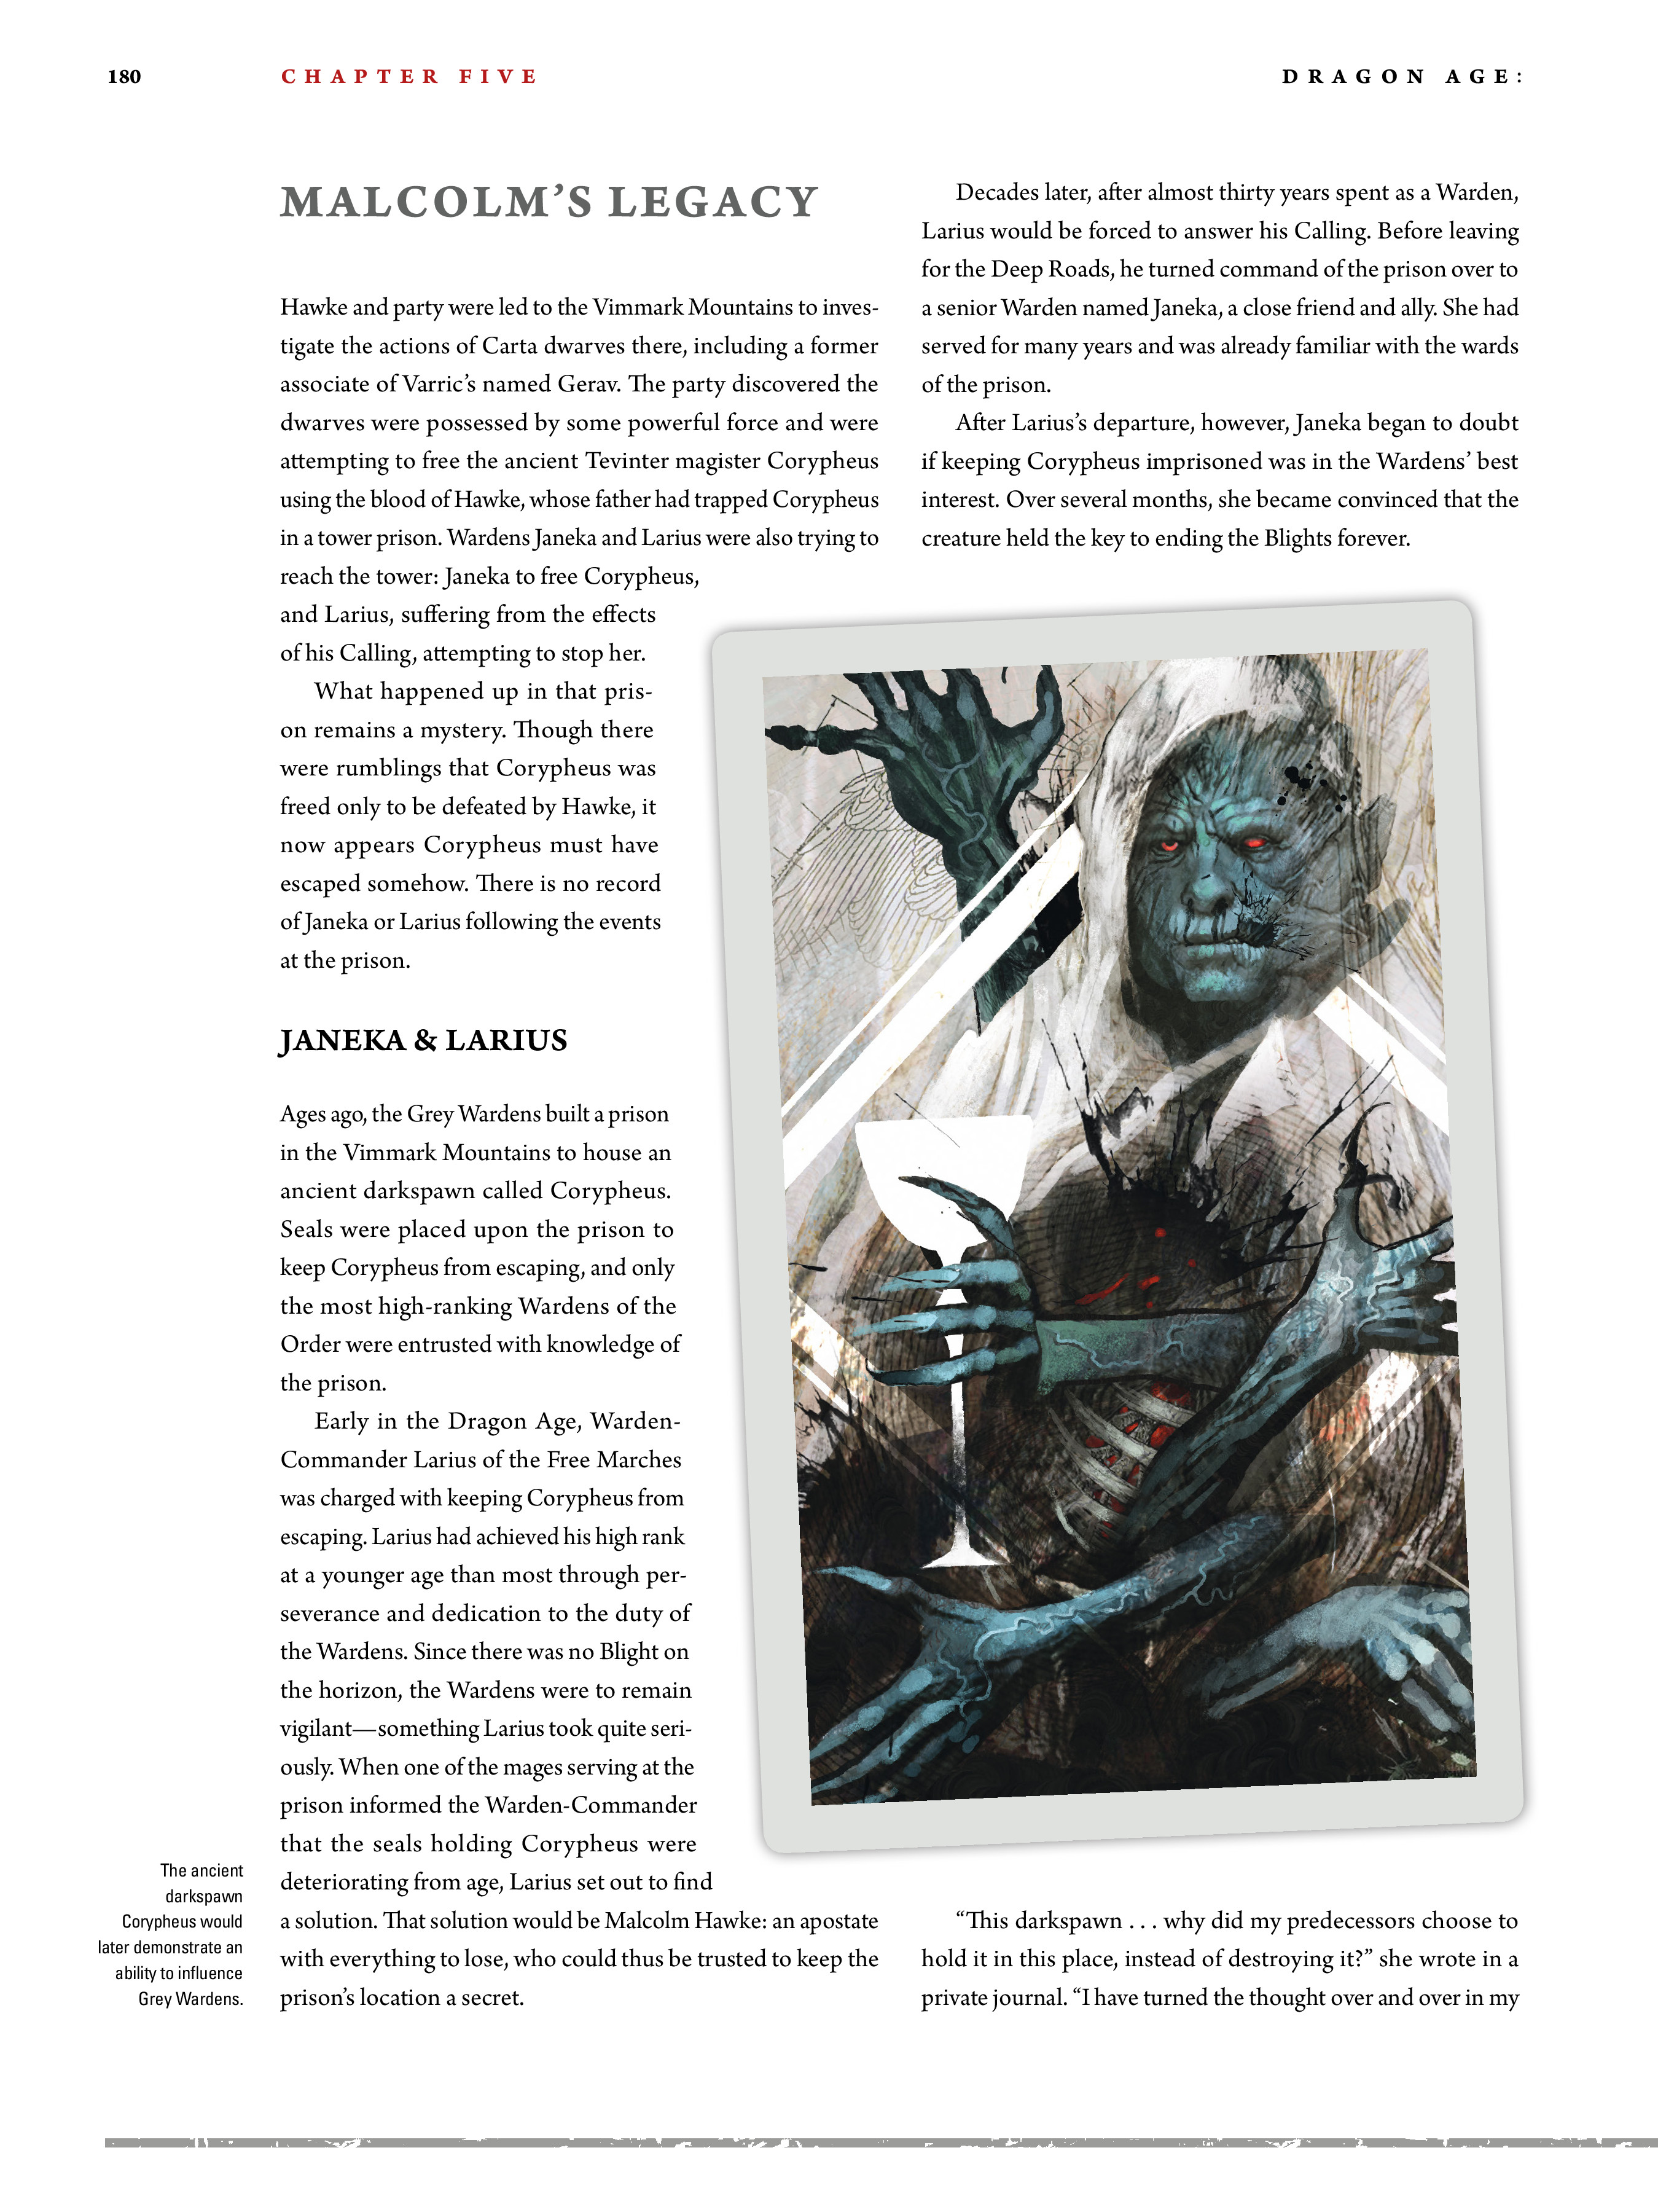 Read online Dragon Age: The World of Thedas comic -  Issue # TPB 2 - 175